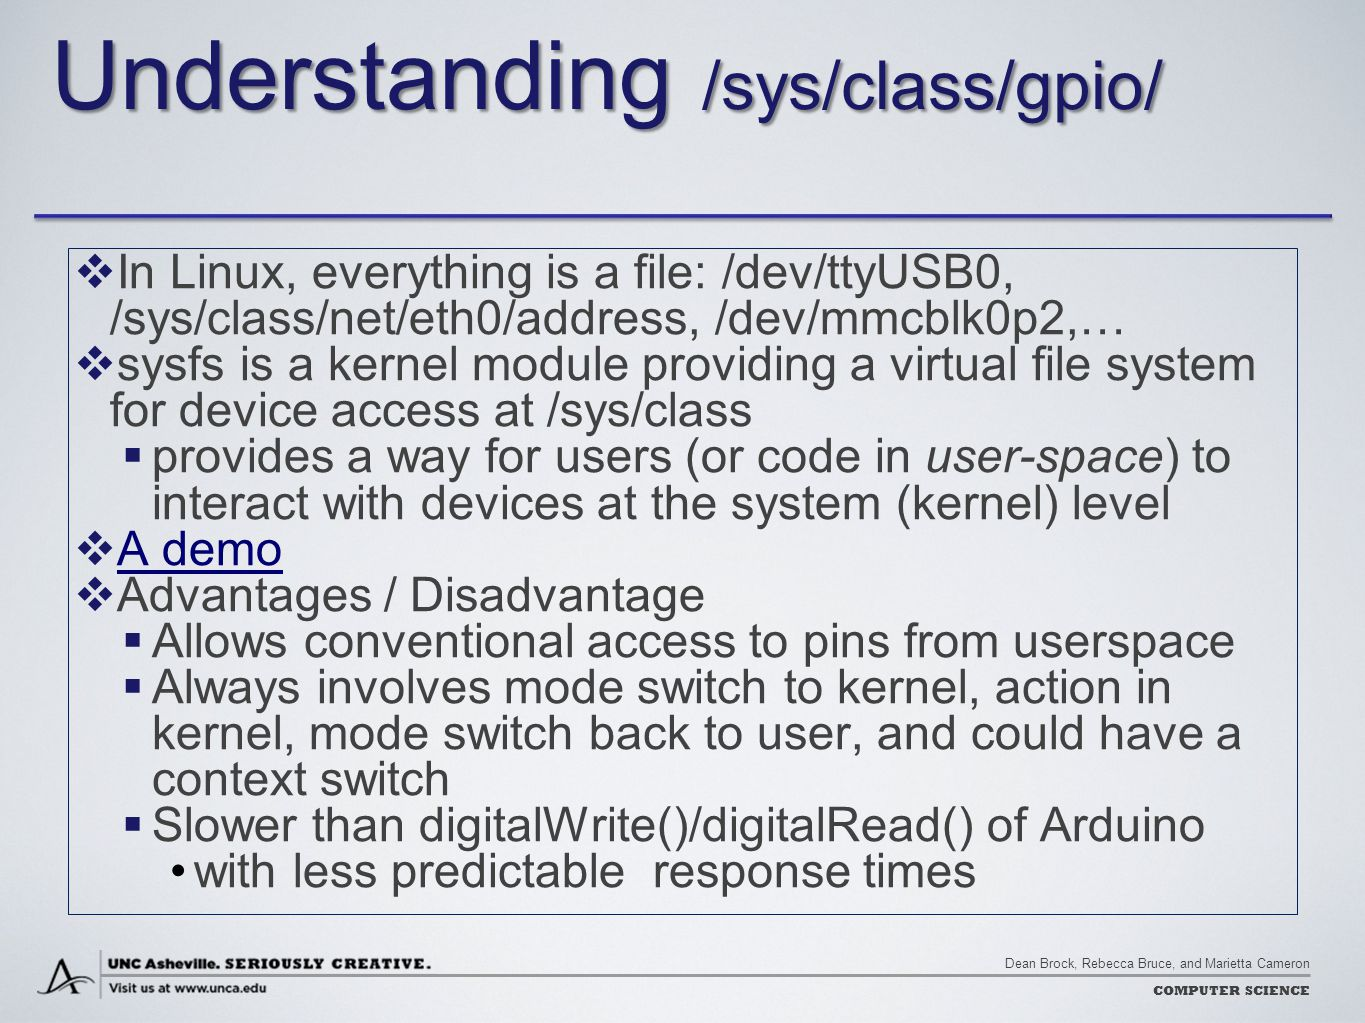 Dean Brock, Rebecca Bruce, and Marietta Cameron COMPUTER SCIENCE Understanding /sys/class/gpio/  In Linux, everything is a file: /dev/ttyUSB0, /sys/c